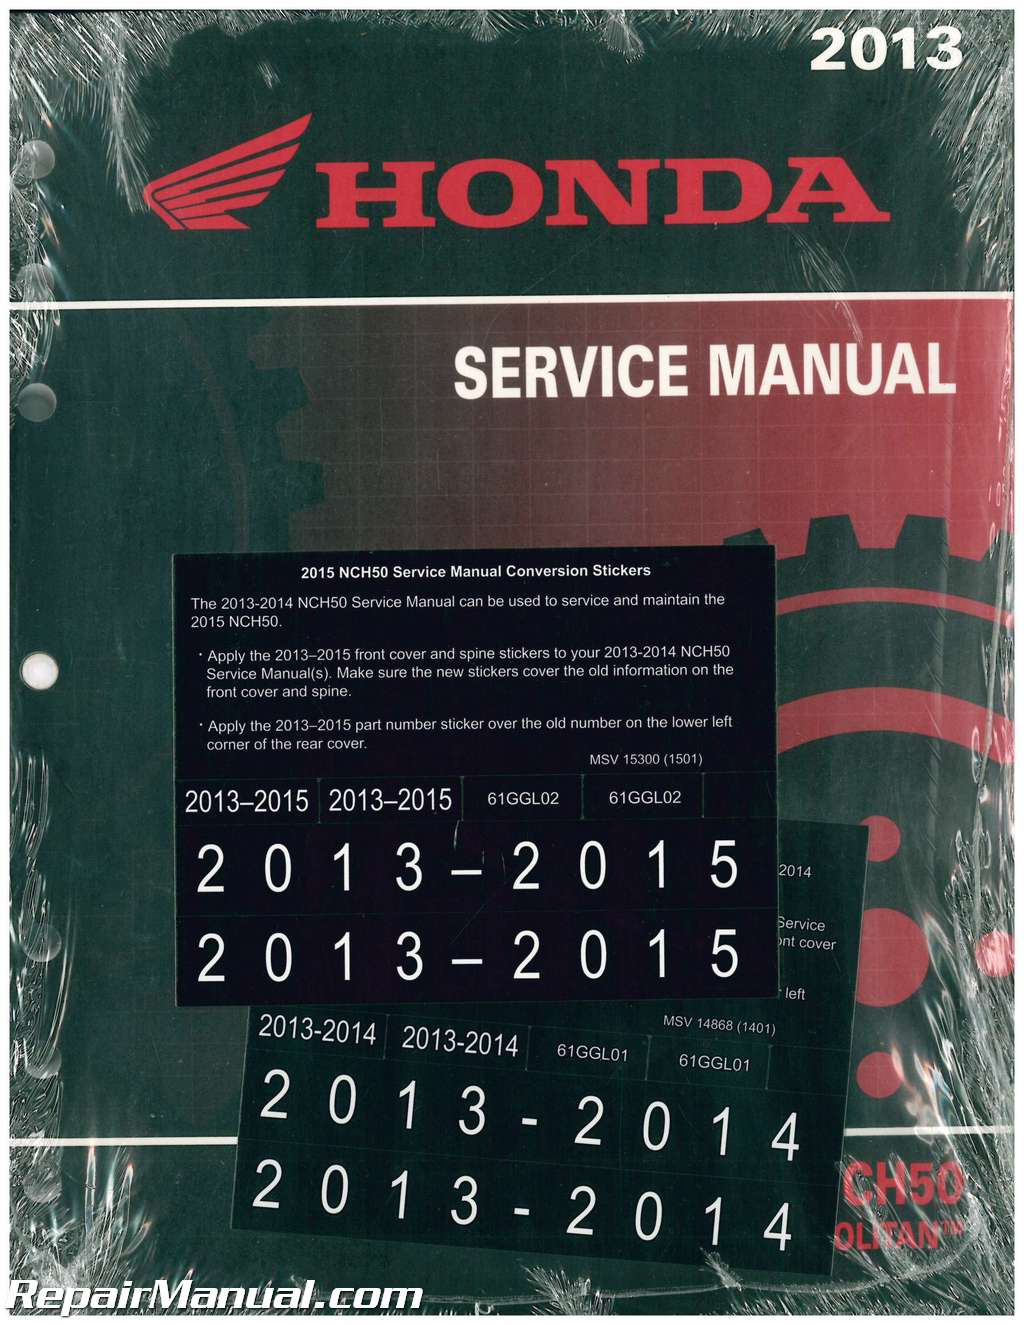 Honda Pcx150 2013 Service Manual Pdf Download Manualslib